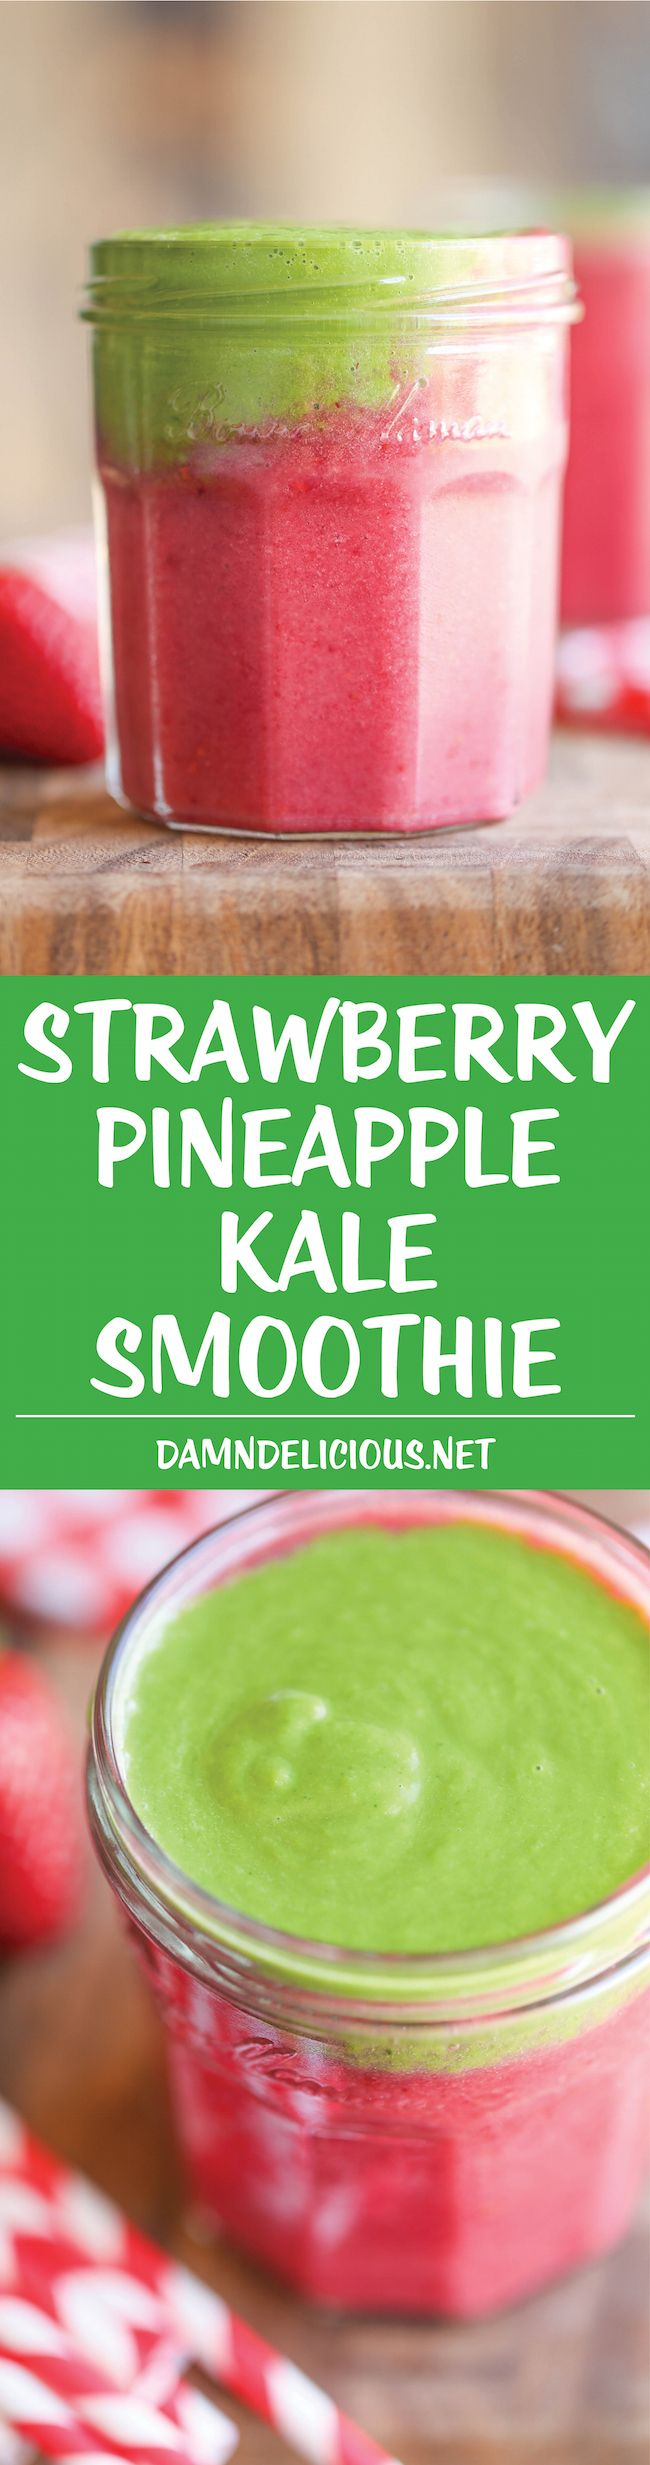 Strawberry Pineapple Kale Smoothie! I love kale and spinach in smoothies, as it is full of goodness! but instead of the strawberry I have banana.